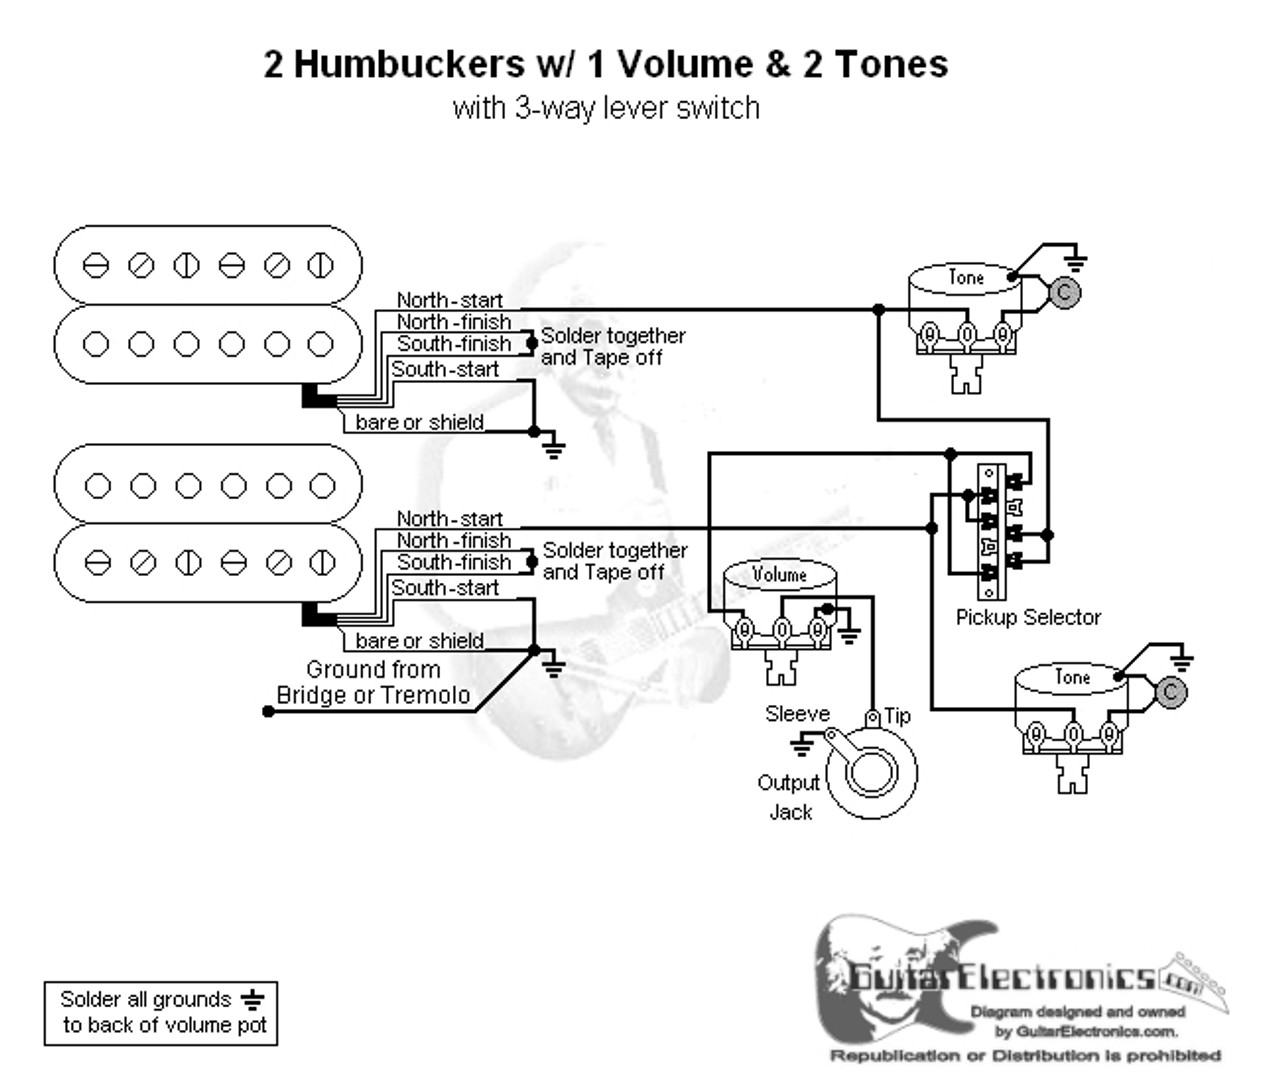 small resolution of strat wiring diagram 1 volume 2 tones wiring diagram paper2 humbuckers 3 way lever switch 1 volume 2 tones bass wiring diagram 1 volume 2 tone strat wiring